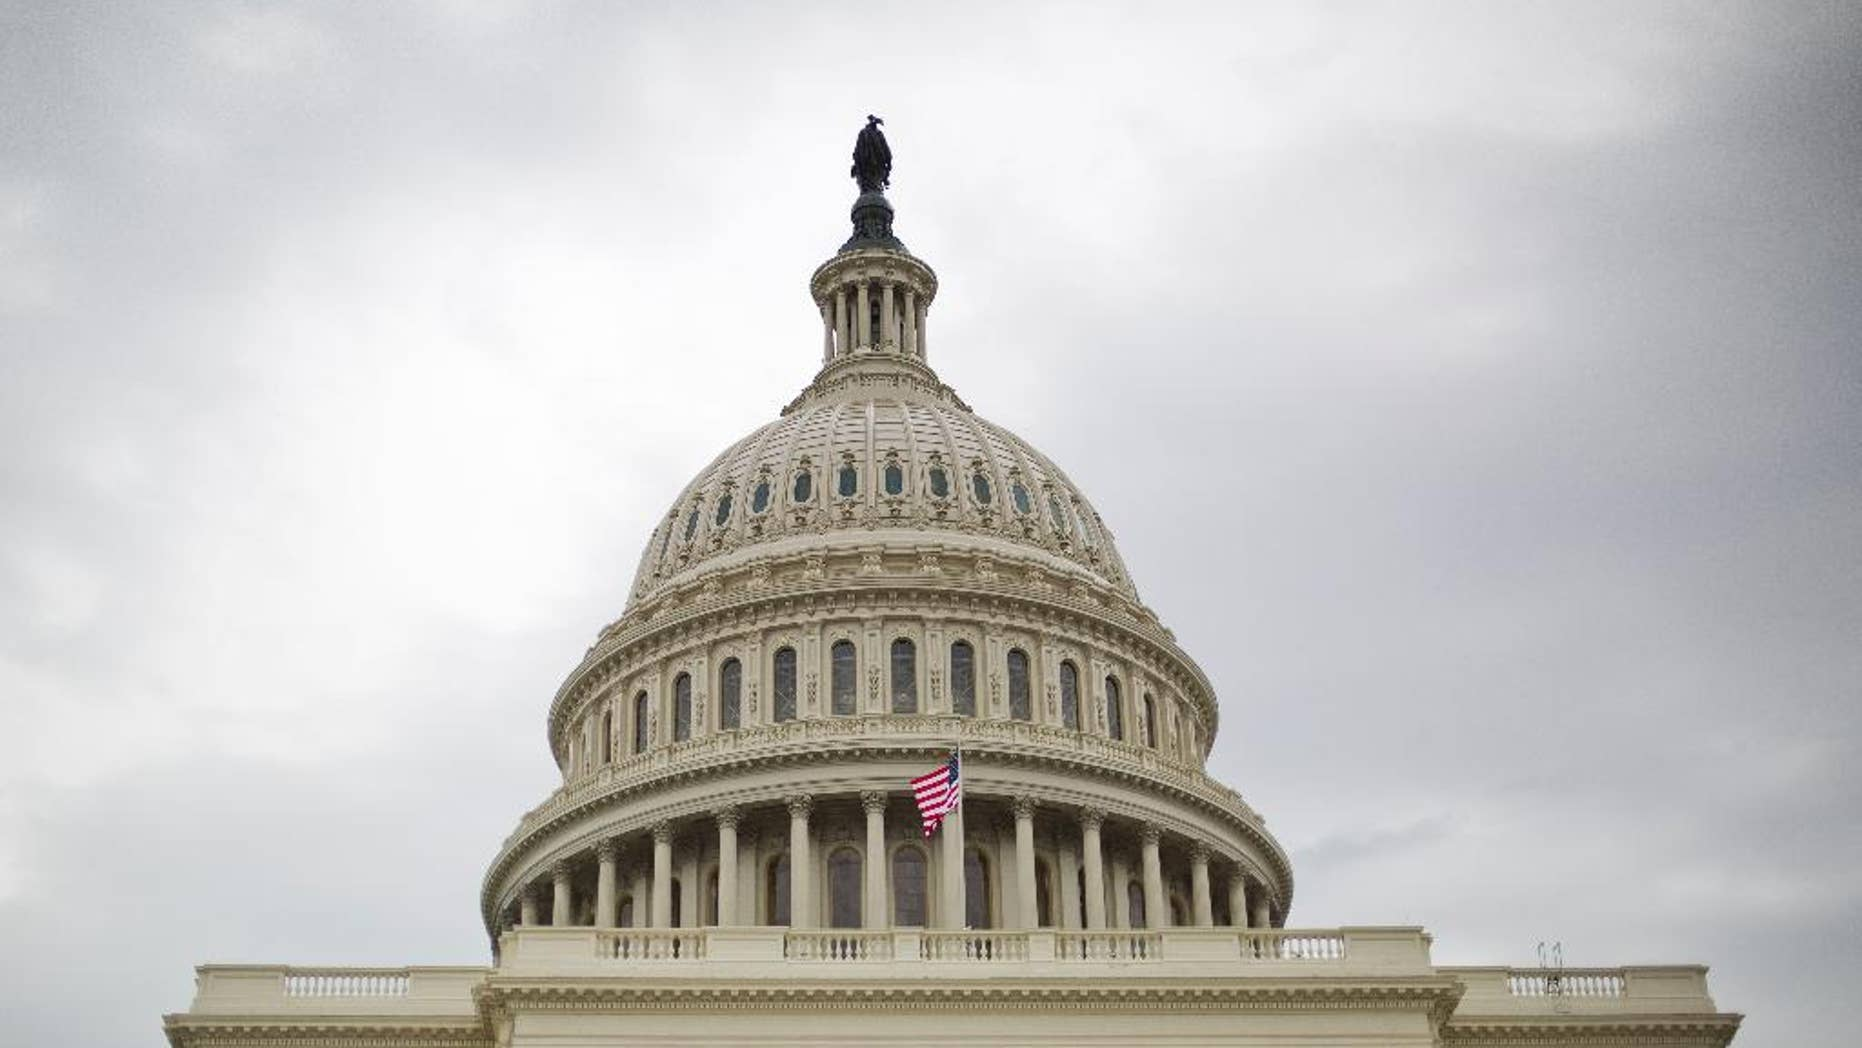 In this photo taken Dec. 8, 2016, the Capitol Building as seen in Washington. Congress wrapped up the 114th session early Saturday, a tumultuous two years marked by the resignation of a House speaker, a fight over a Supreme Court vacancy, bipartisan bills on health care and education and inaction on immigration and criminal justice. The new Congress will be sworn-in Jan. 3, 2017.  (AP Photo/Pablo Martinez Monsivais)